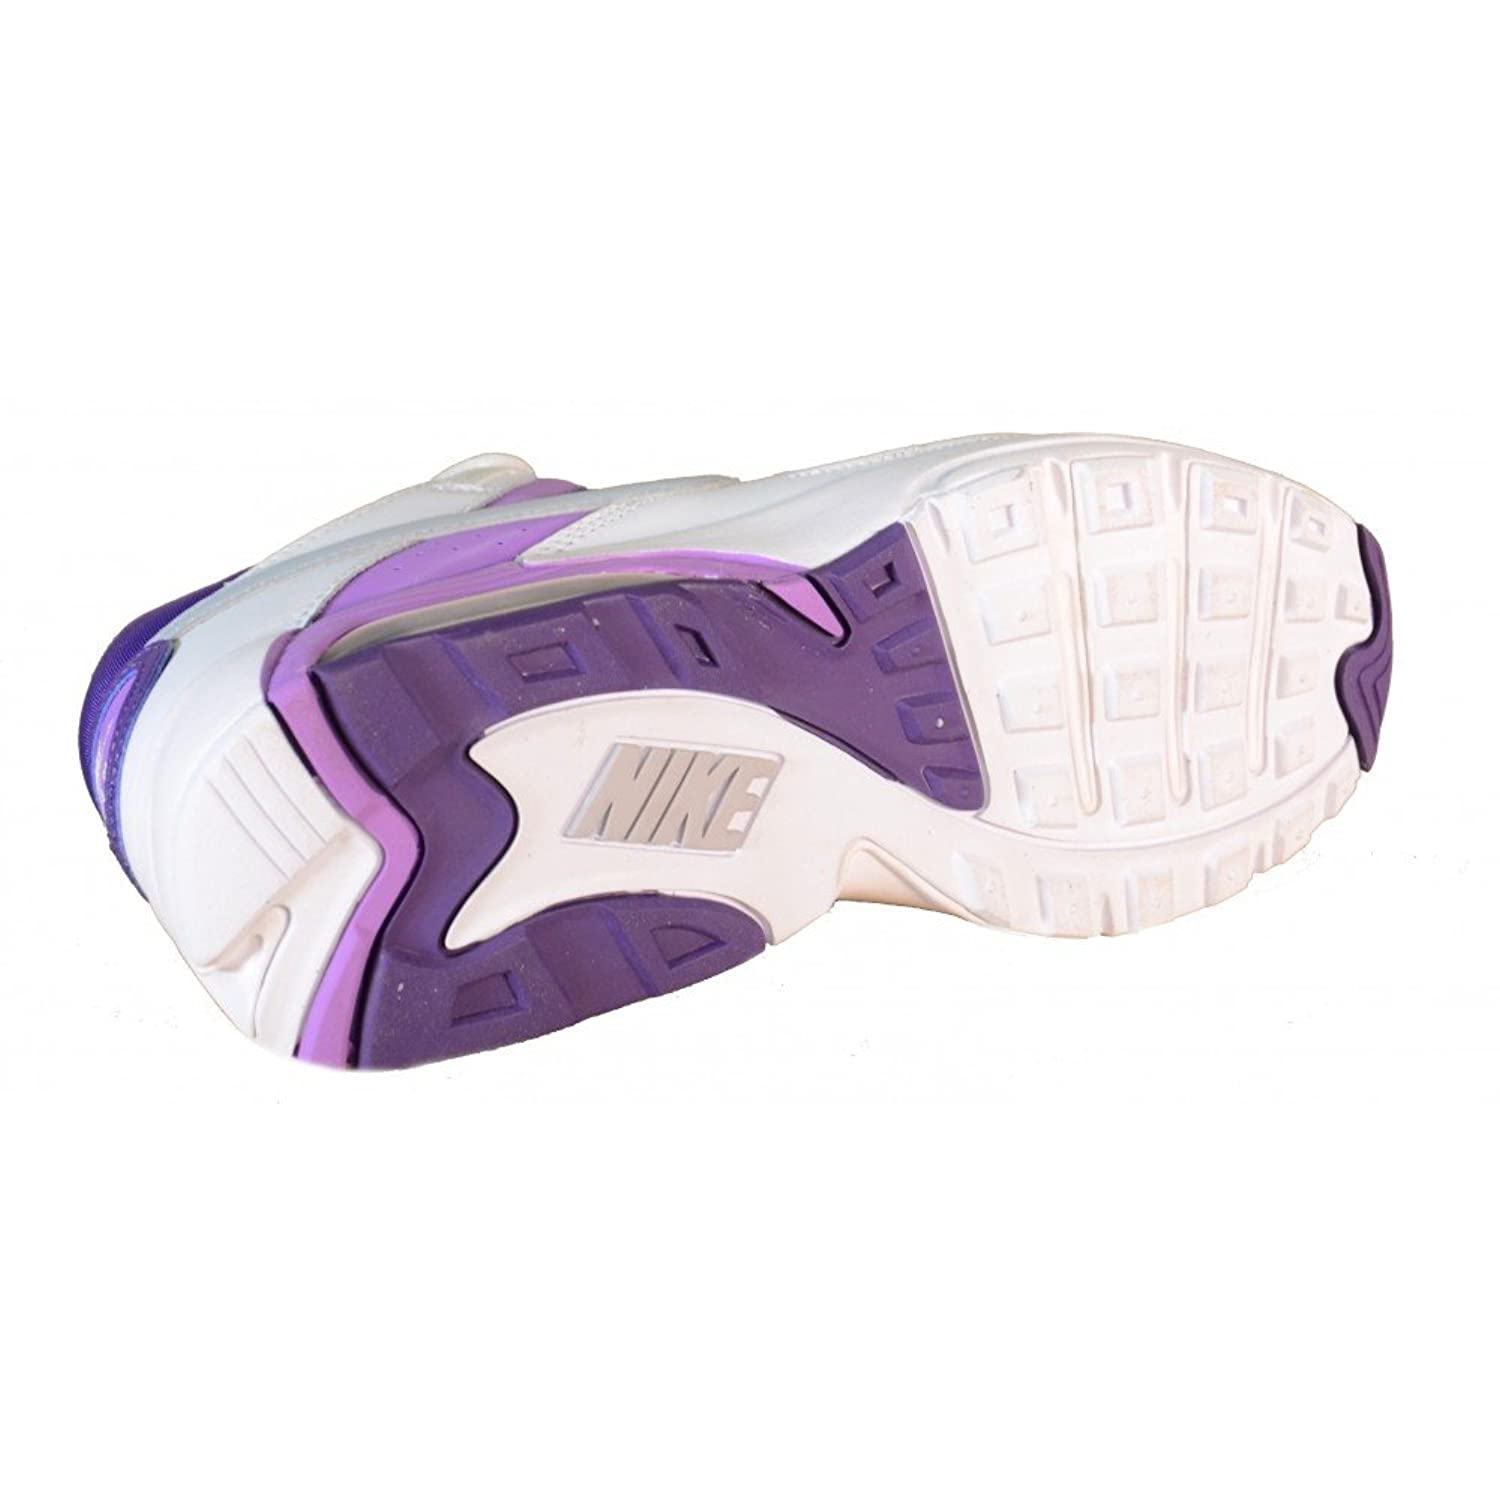 a1a6c64f1f3 ... Nike - Nike Air Max Go Strong Womens Sports Shoes White Purple Leather  Material 432088 ...